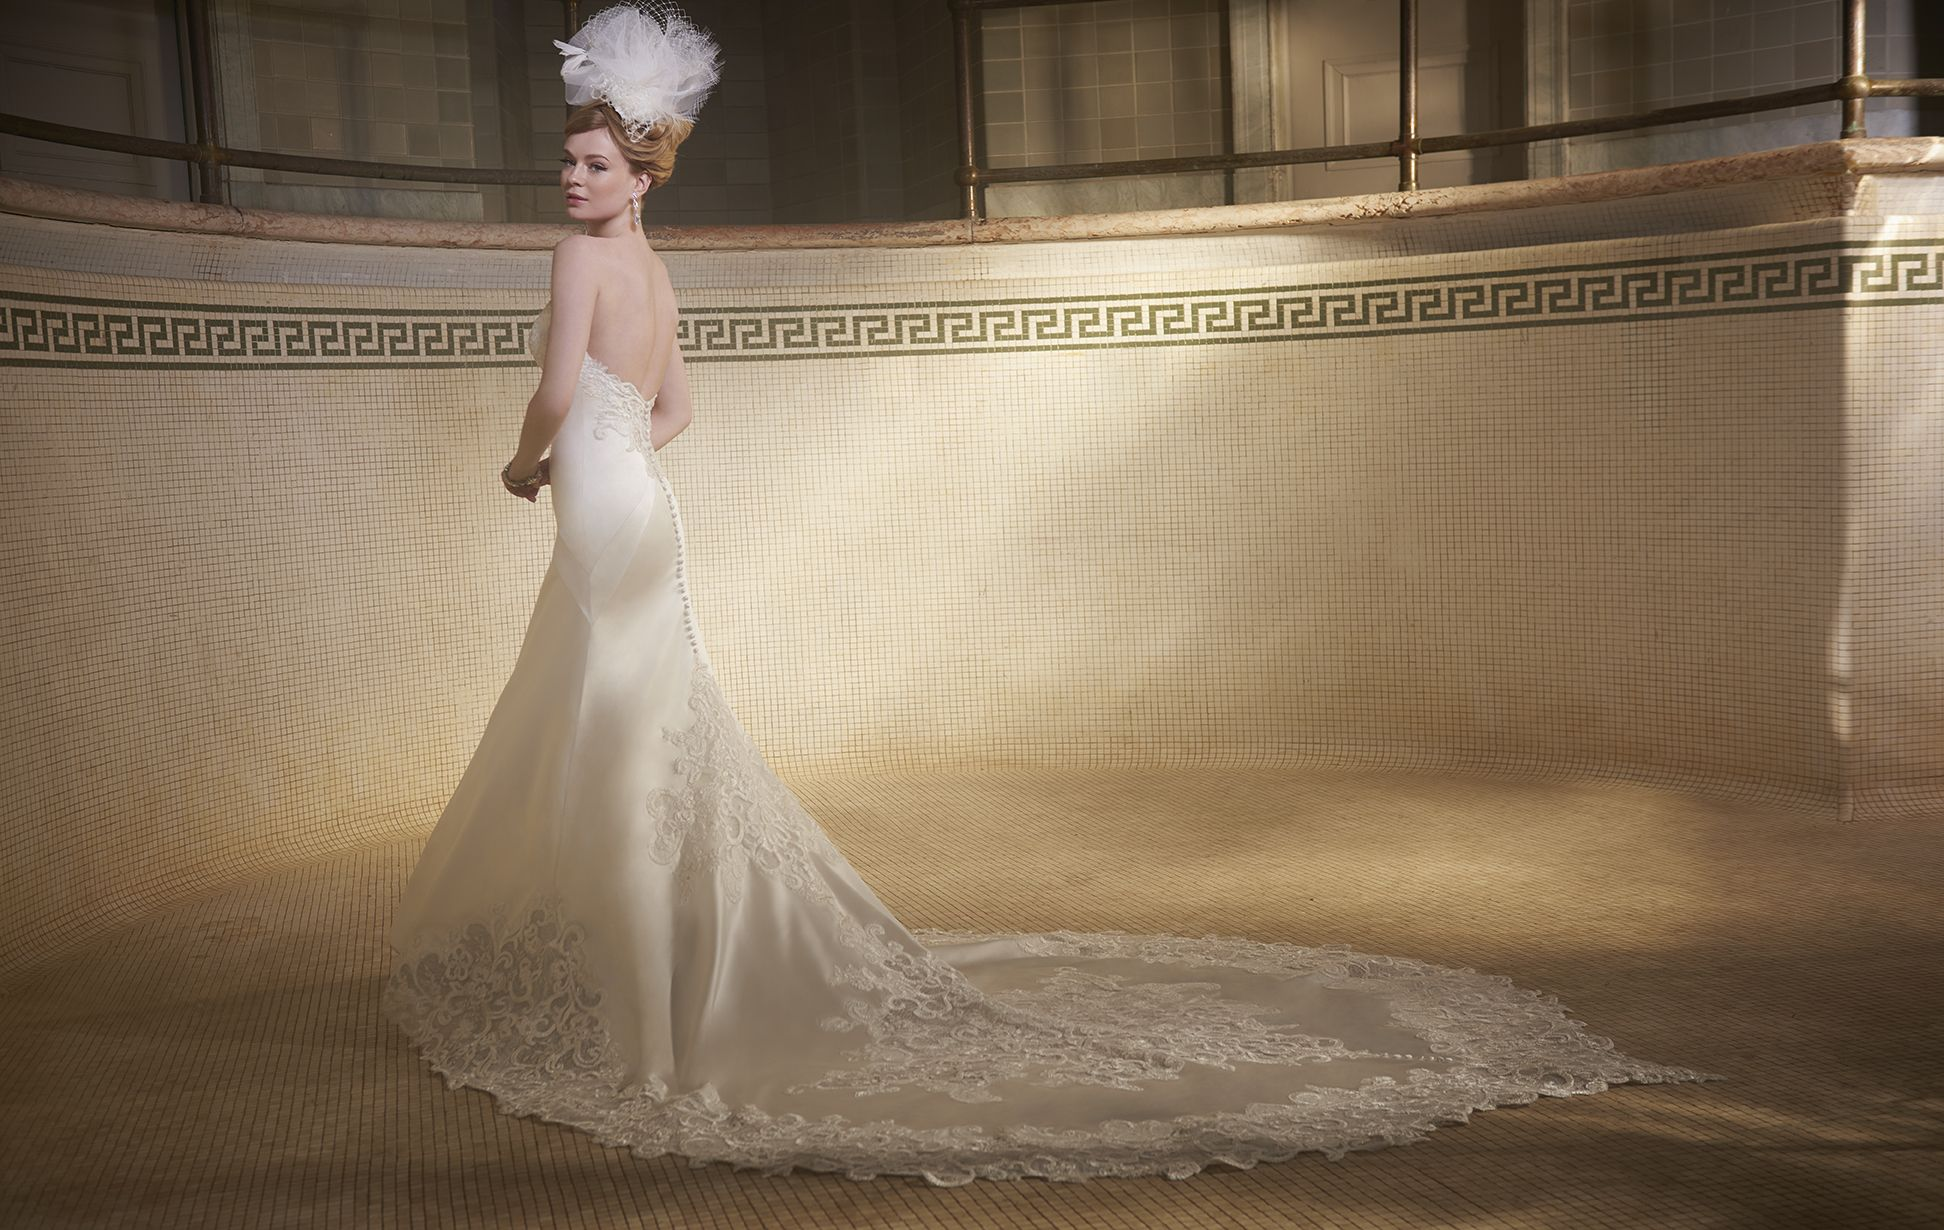 Chicago wedding dress shops  Matthew Christopher designer weddingdress in Chicago Dimitraus